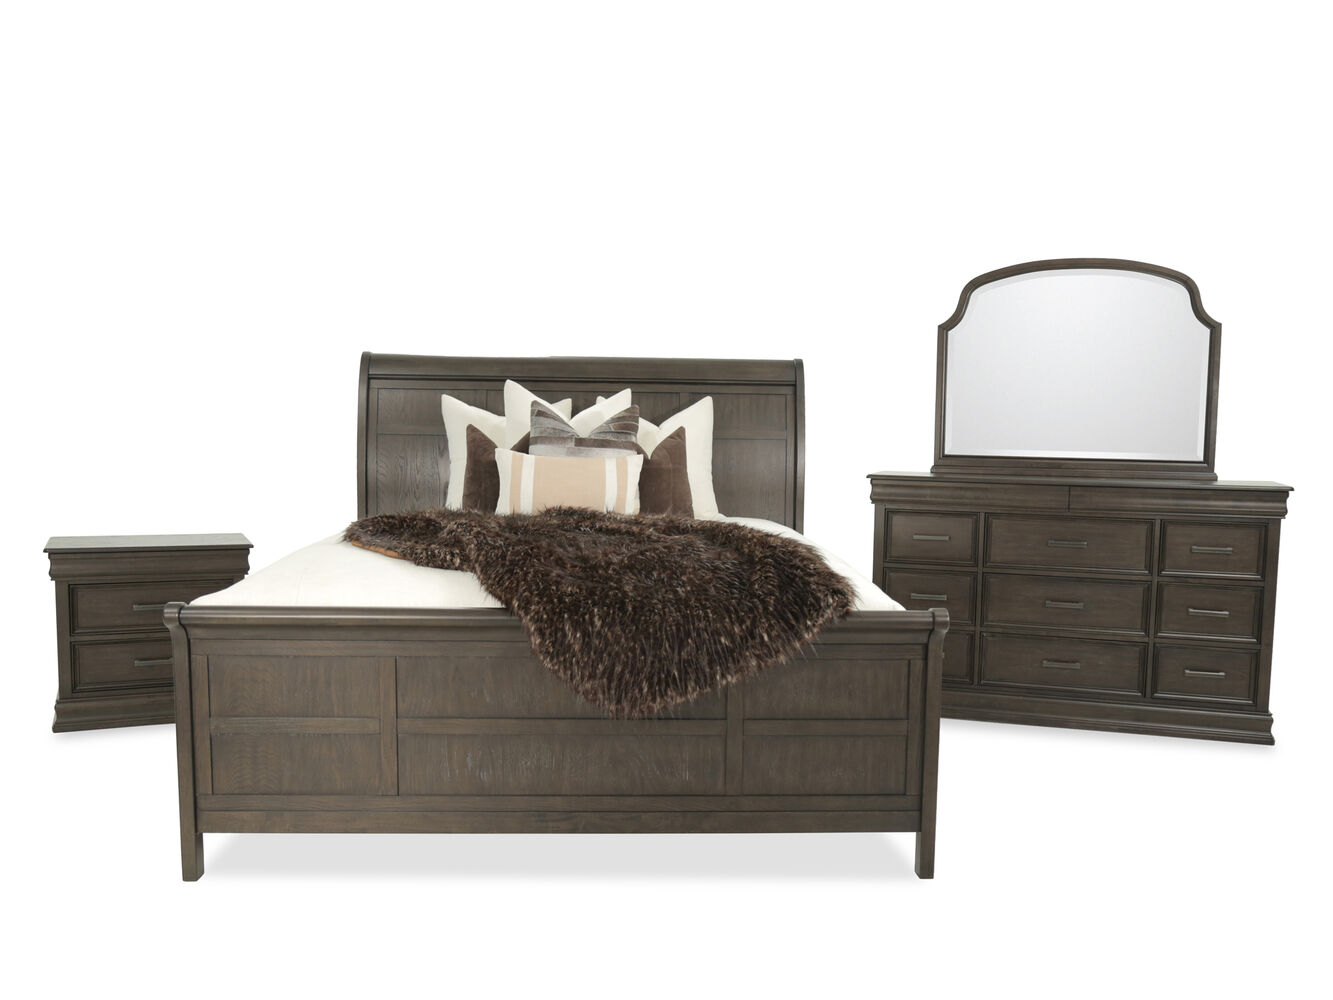 dresser for signature number sets products by mirror rustic ashley modern stavani design item bedroom and